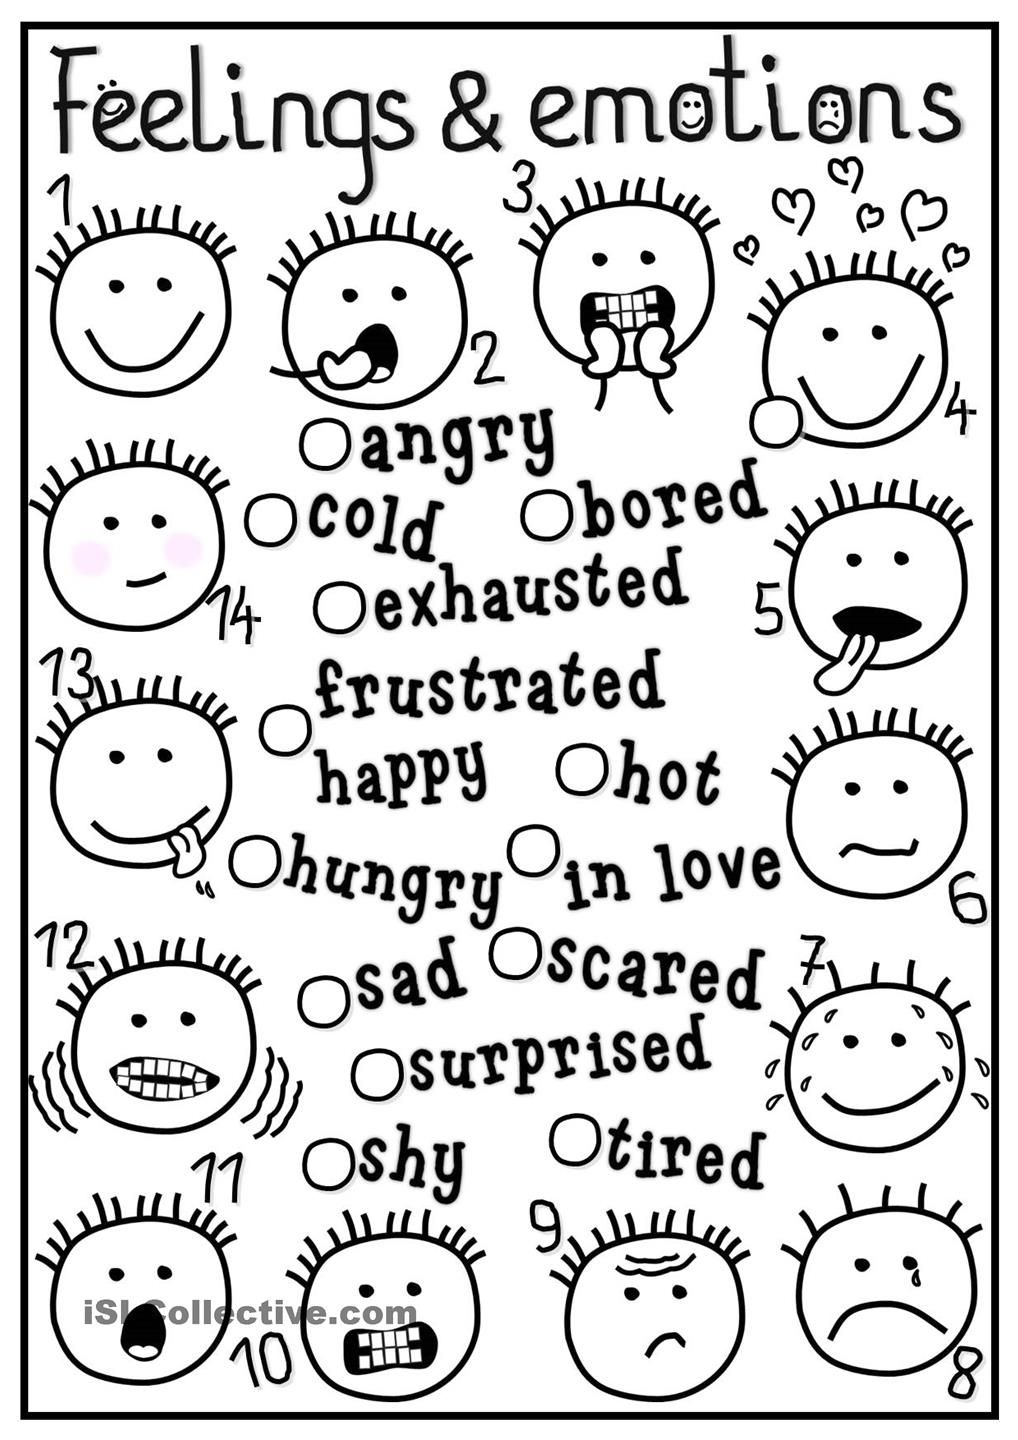 Feelings and emotions matching Feelings emotions Pinterest